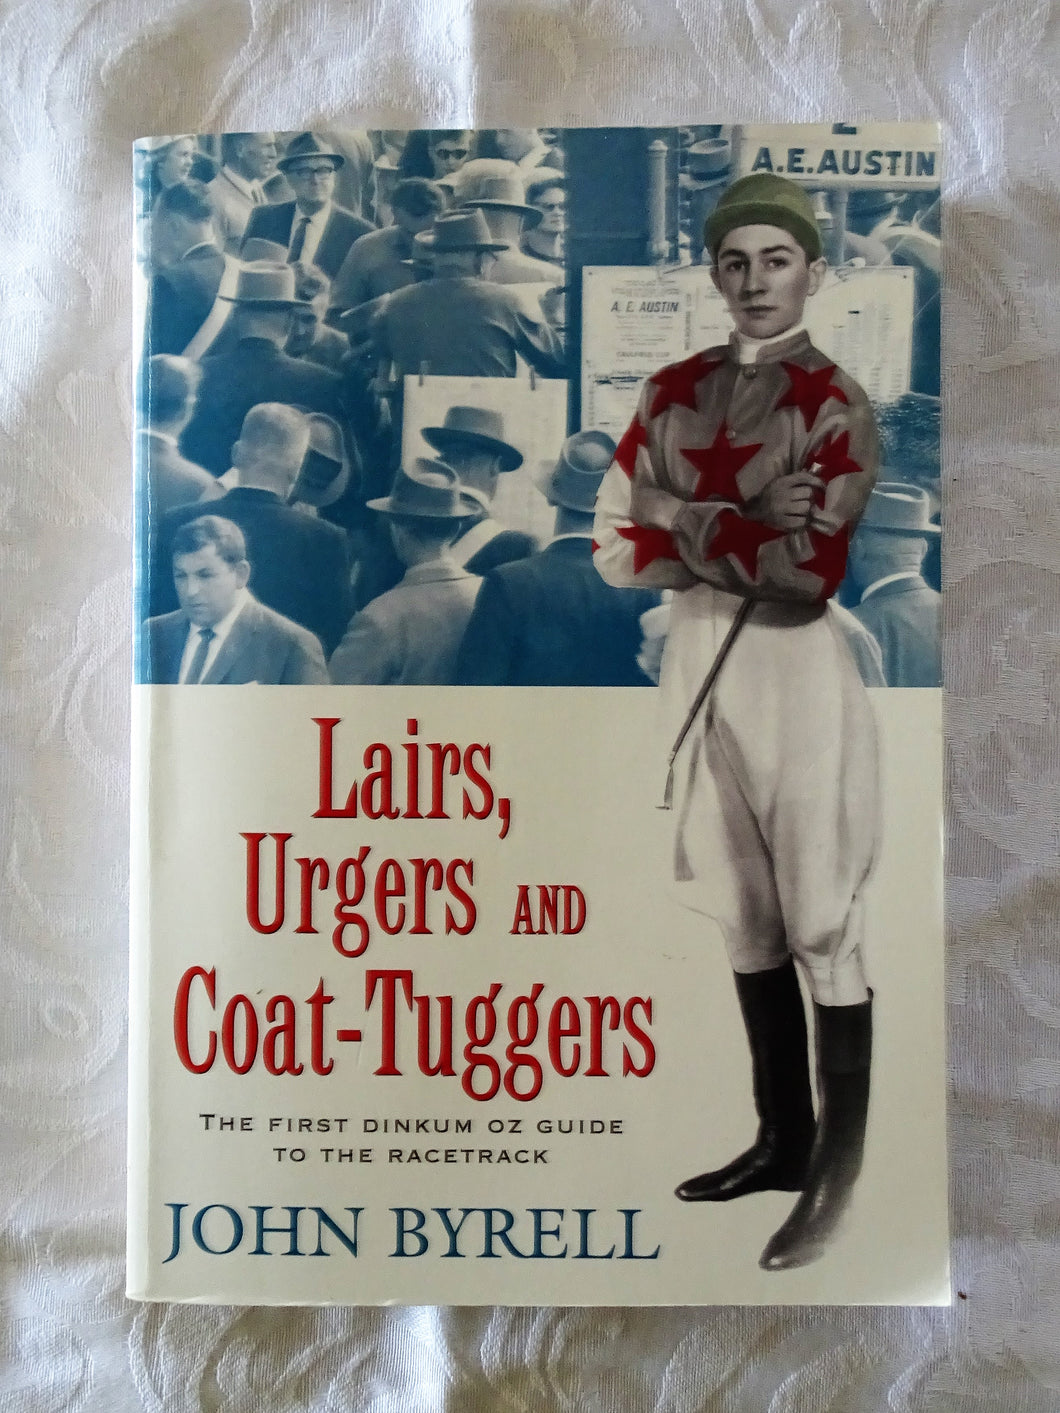 Lairs, Urgers and Coat-Tuggers by John Byrell